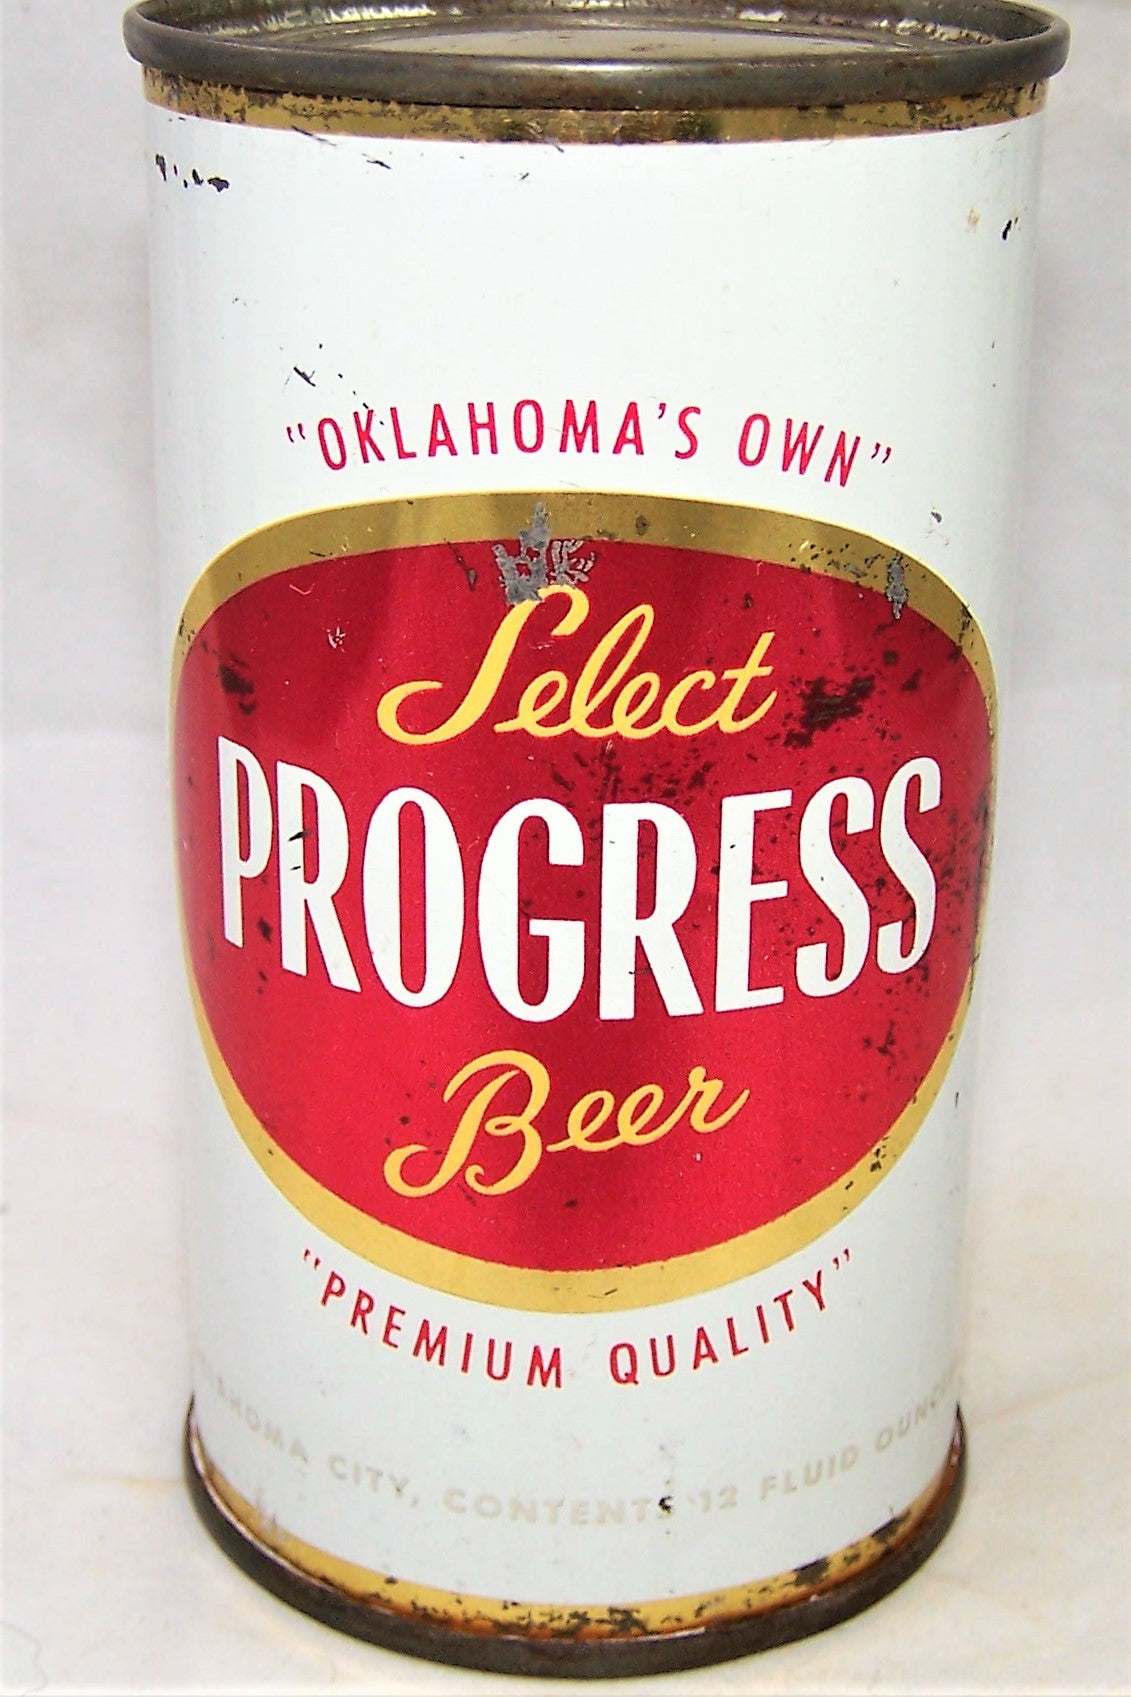 Progress Select Beer, USBC 117-14, Grade 1-  Sold on 11/20/19